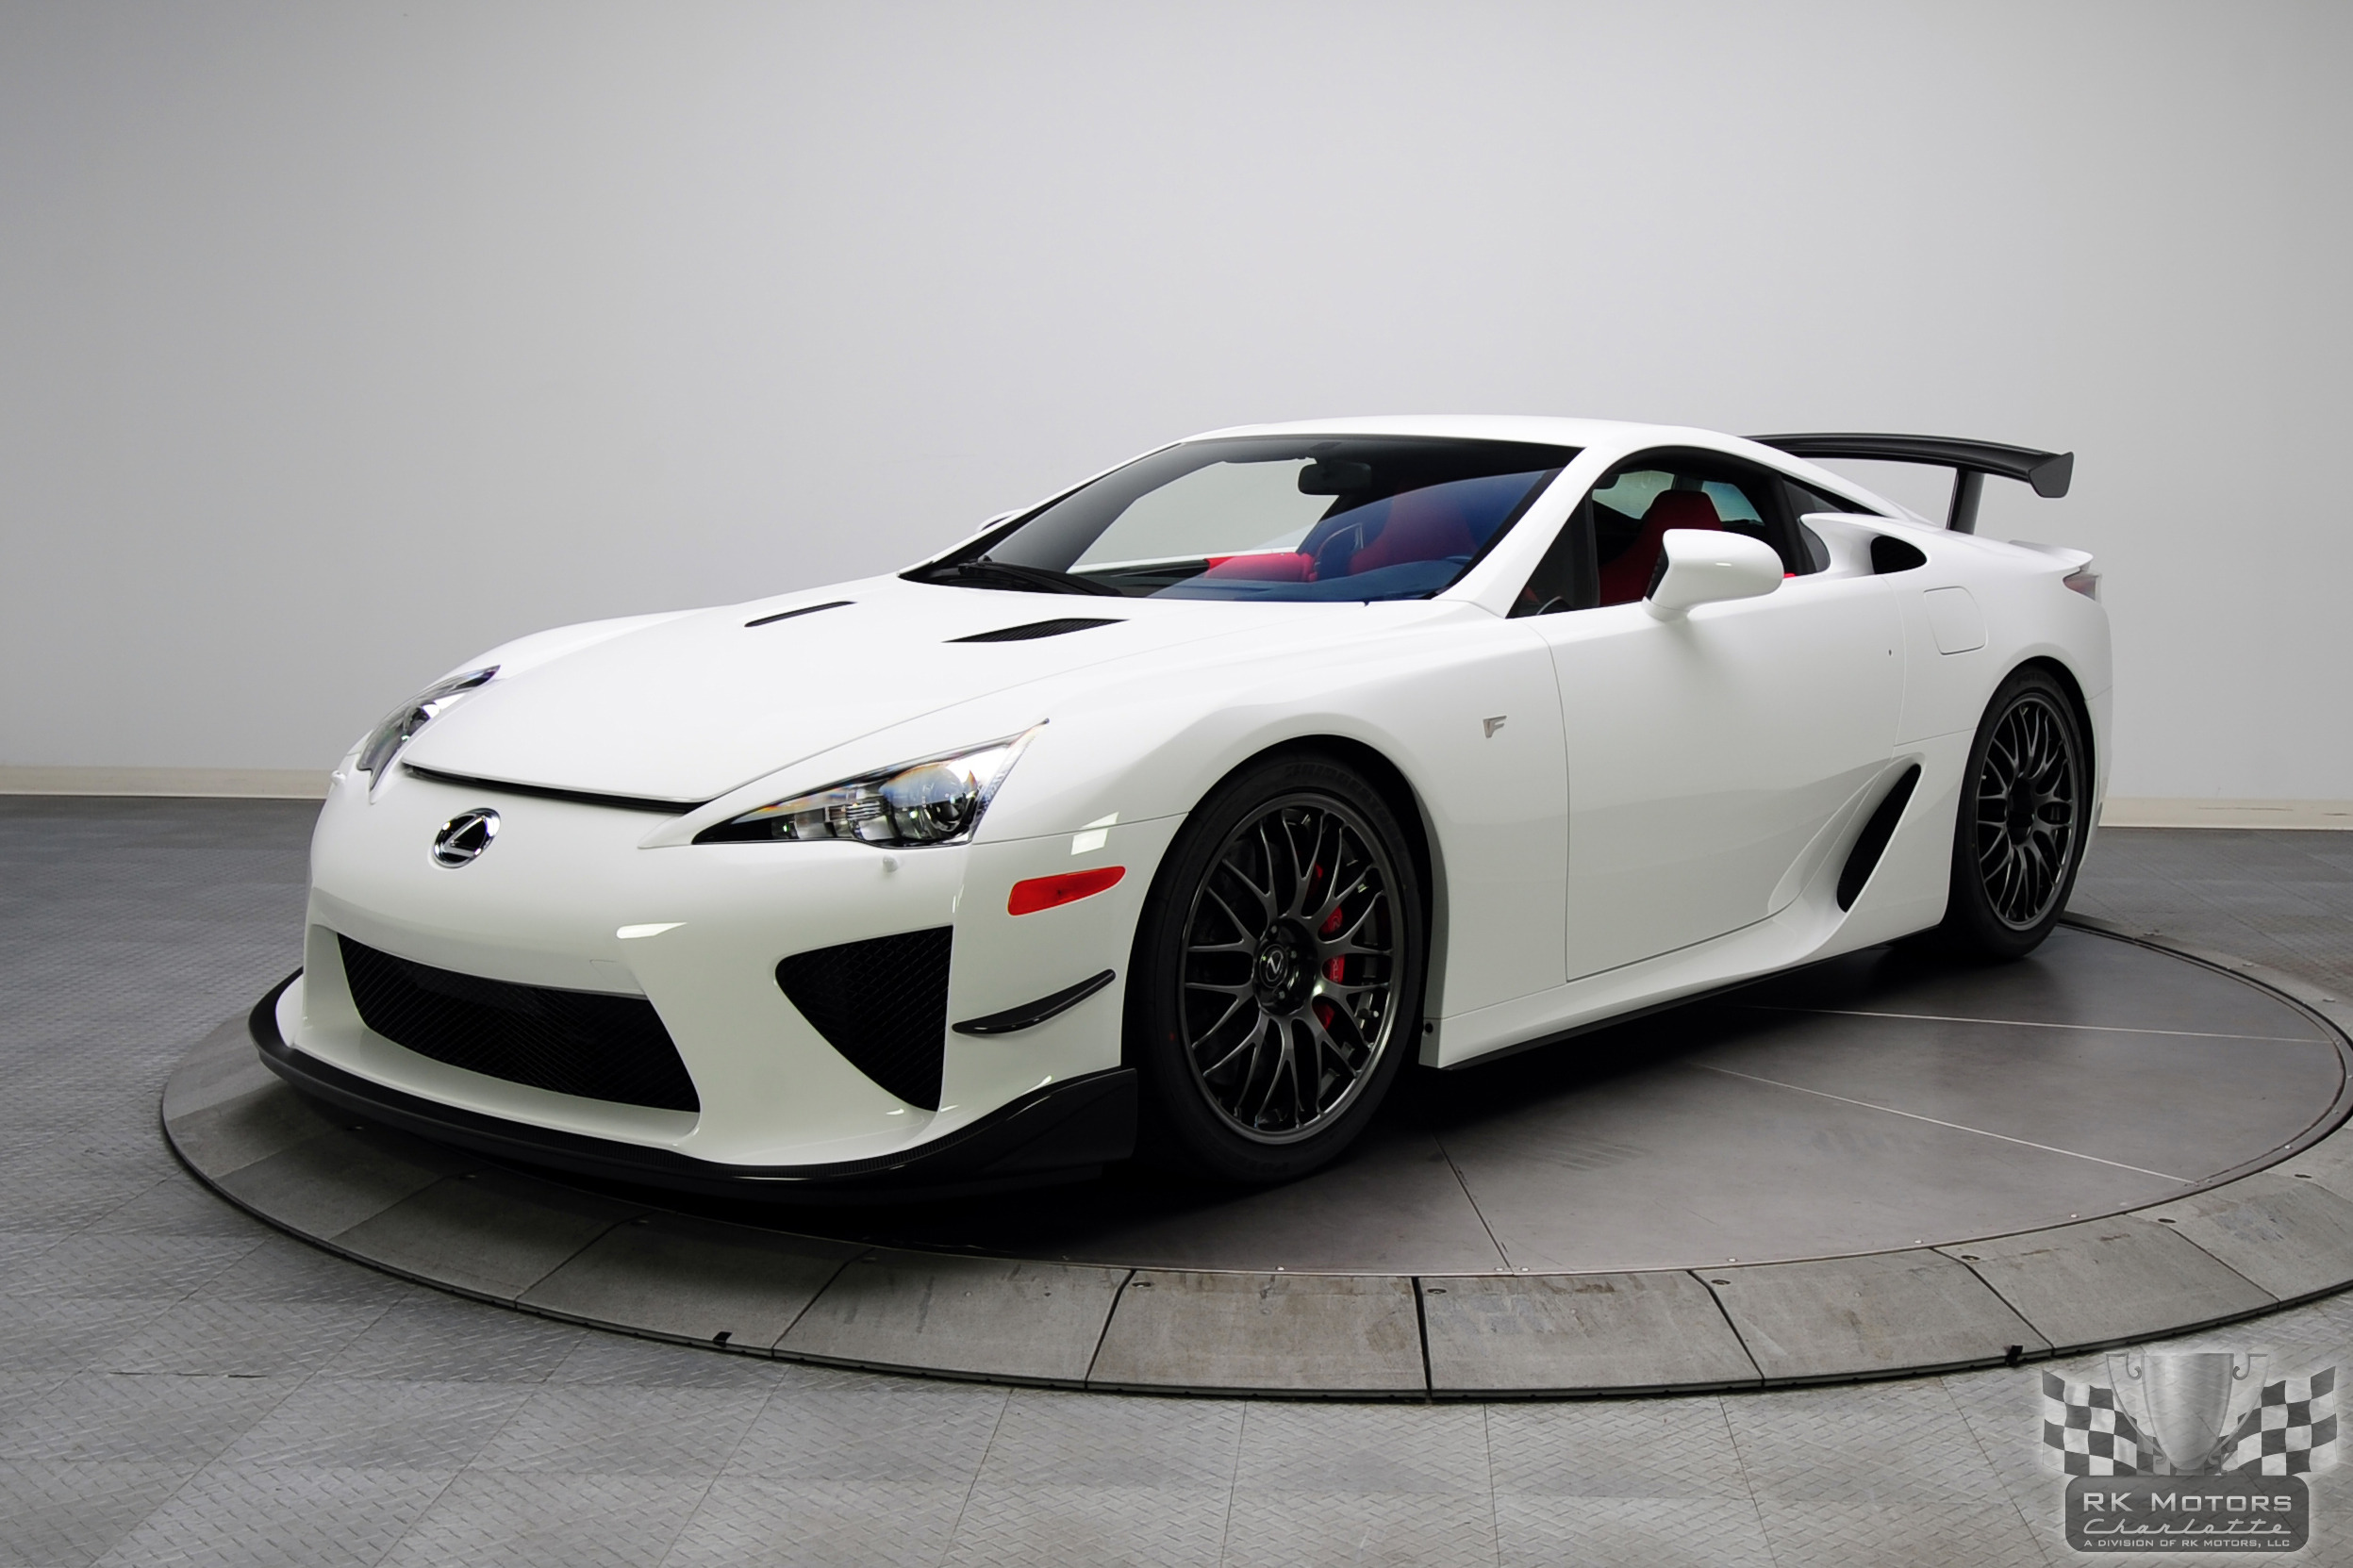 U S Collector Car Dealer Selling Lexus Lfa N 252 Rburgring Edition